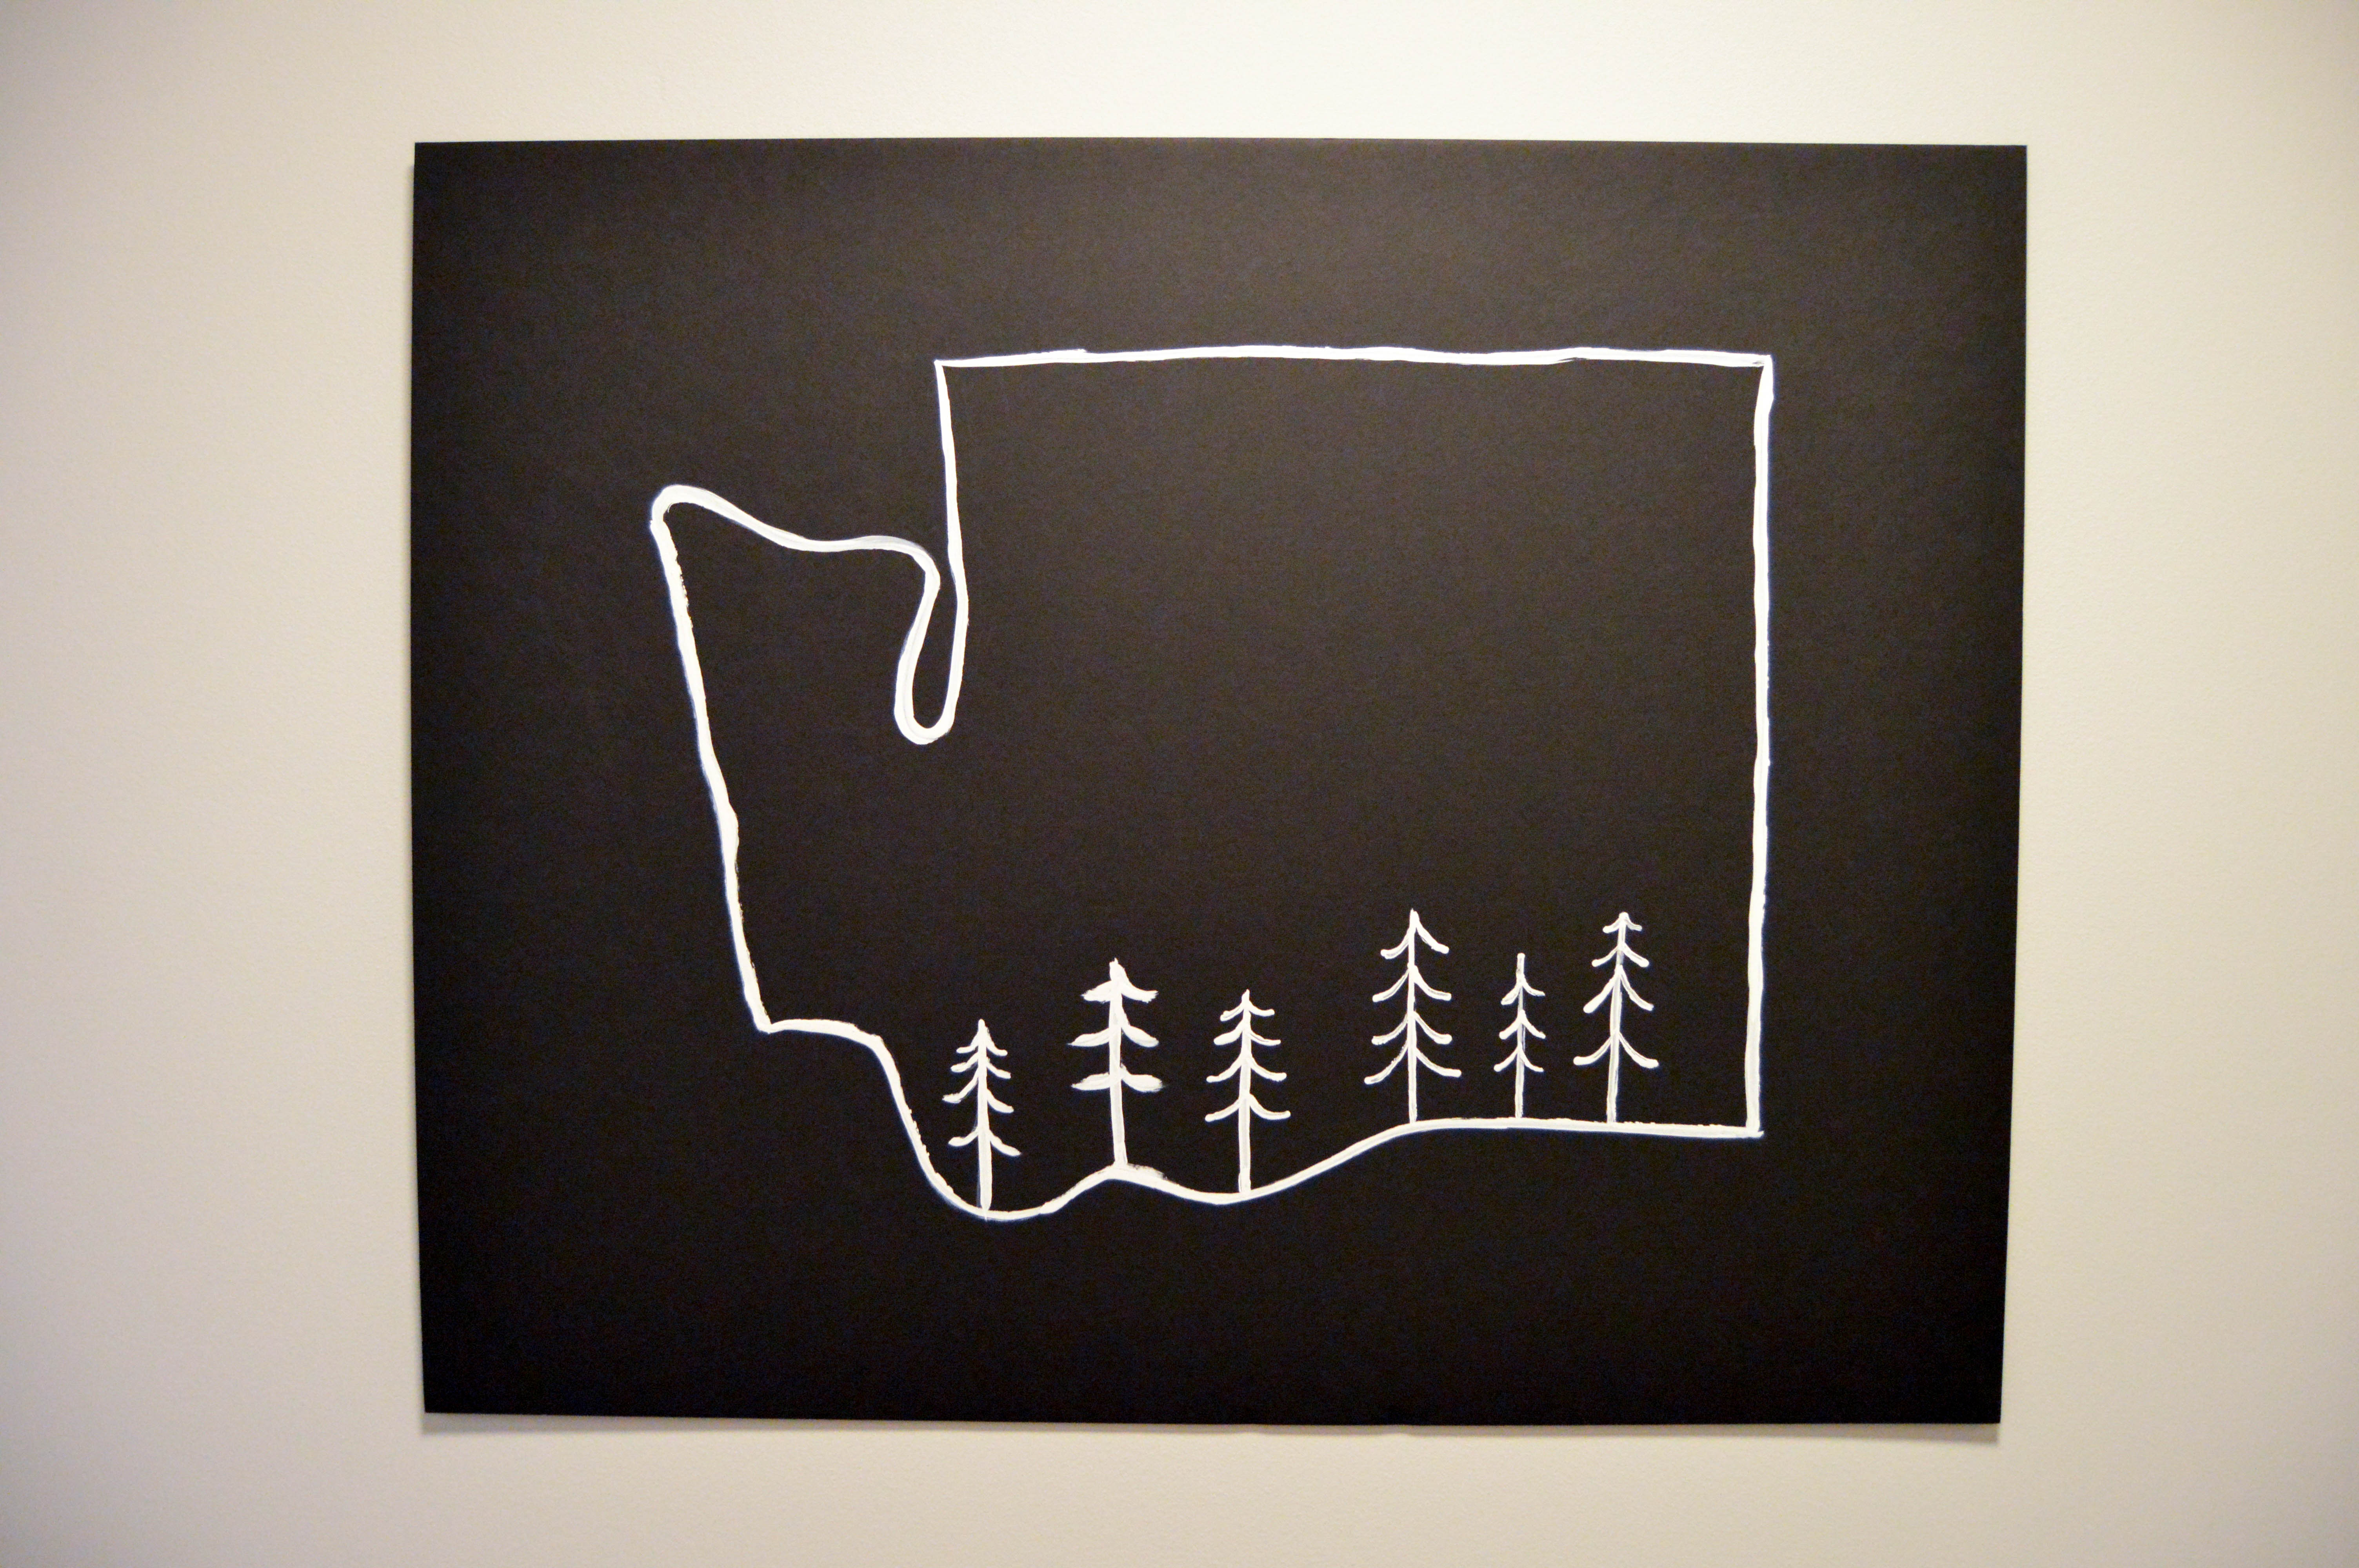 Washington State Outline Art - Small PNW (Pacific Northwest) outdoor theme nursery with mountains + animals for our baby boy. Mountain mural and paint chip art tutorial for woodland feel.